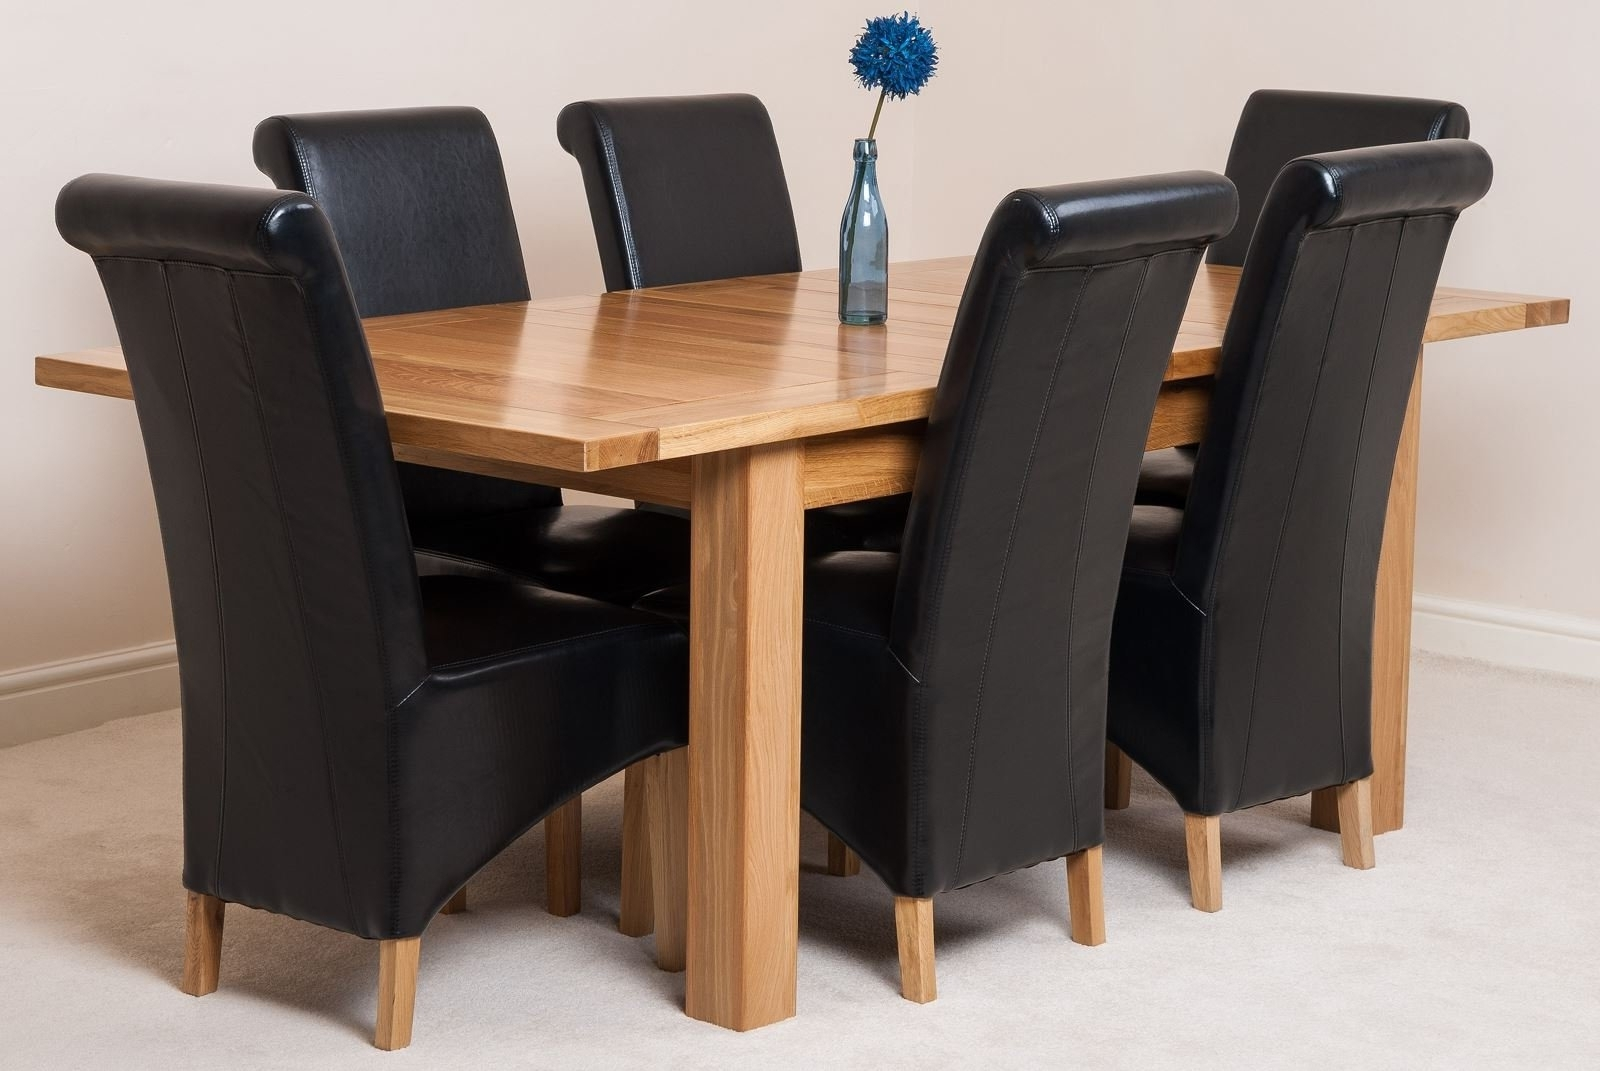 Oak Extending Dining Tables And 4 Chairs With Regard To Trendy Seattle Solid Oak Extending Dining Table With 4 Or 6 Washington (View 23 of 25)